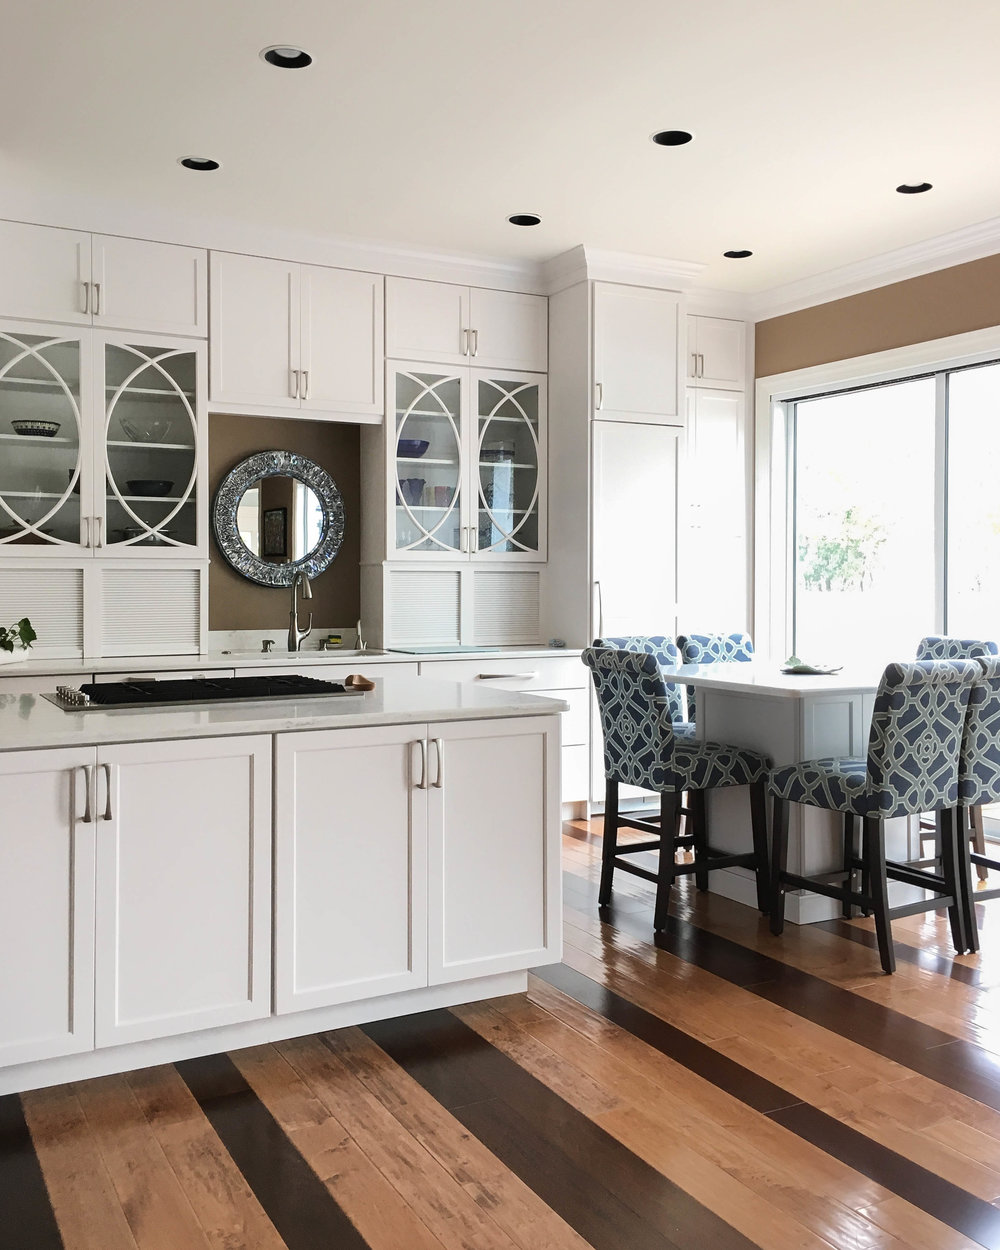 Beautiful striped floors in bright white kitchen with upholstered bar stools.